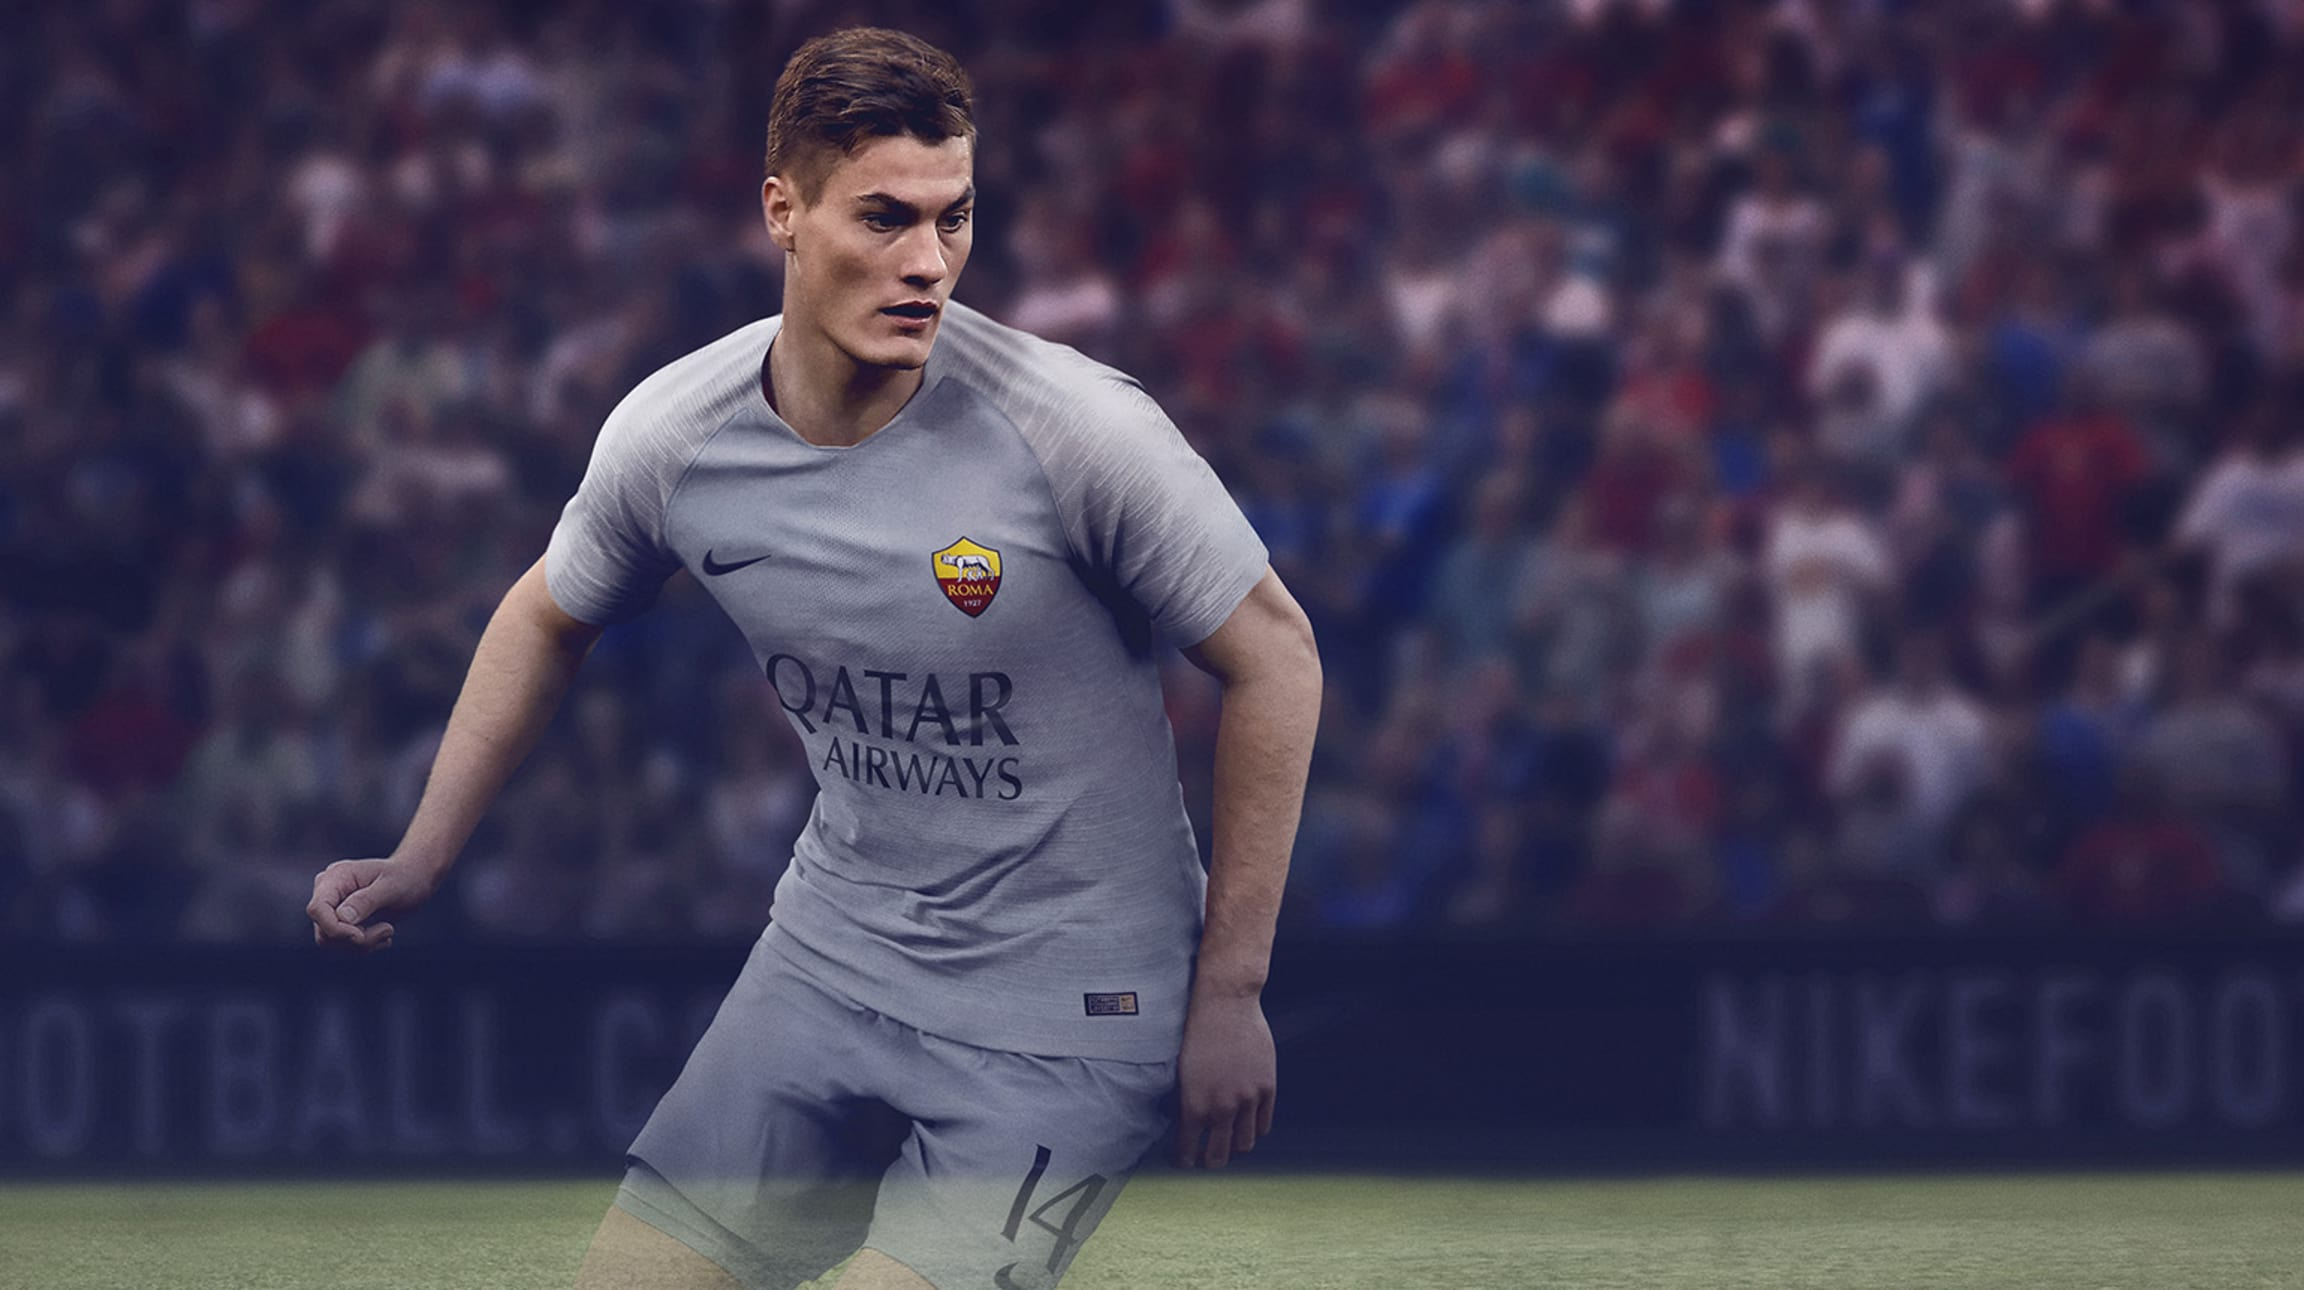 f2c19877e 28 Jun 2018 By AS Roma. AS Roma are delighted to unveil the new Nike away  strip for the 2018-19 season ...